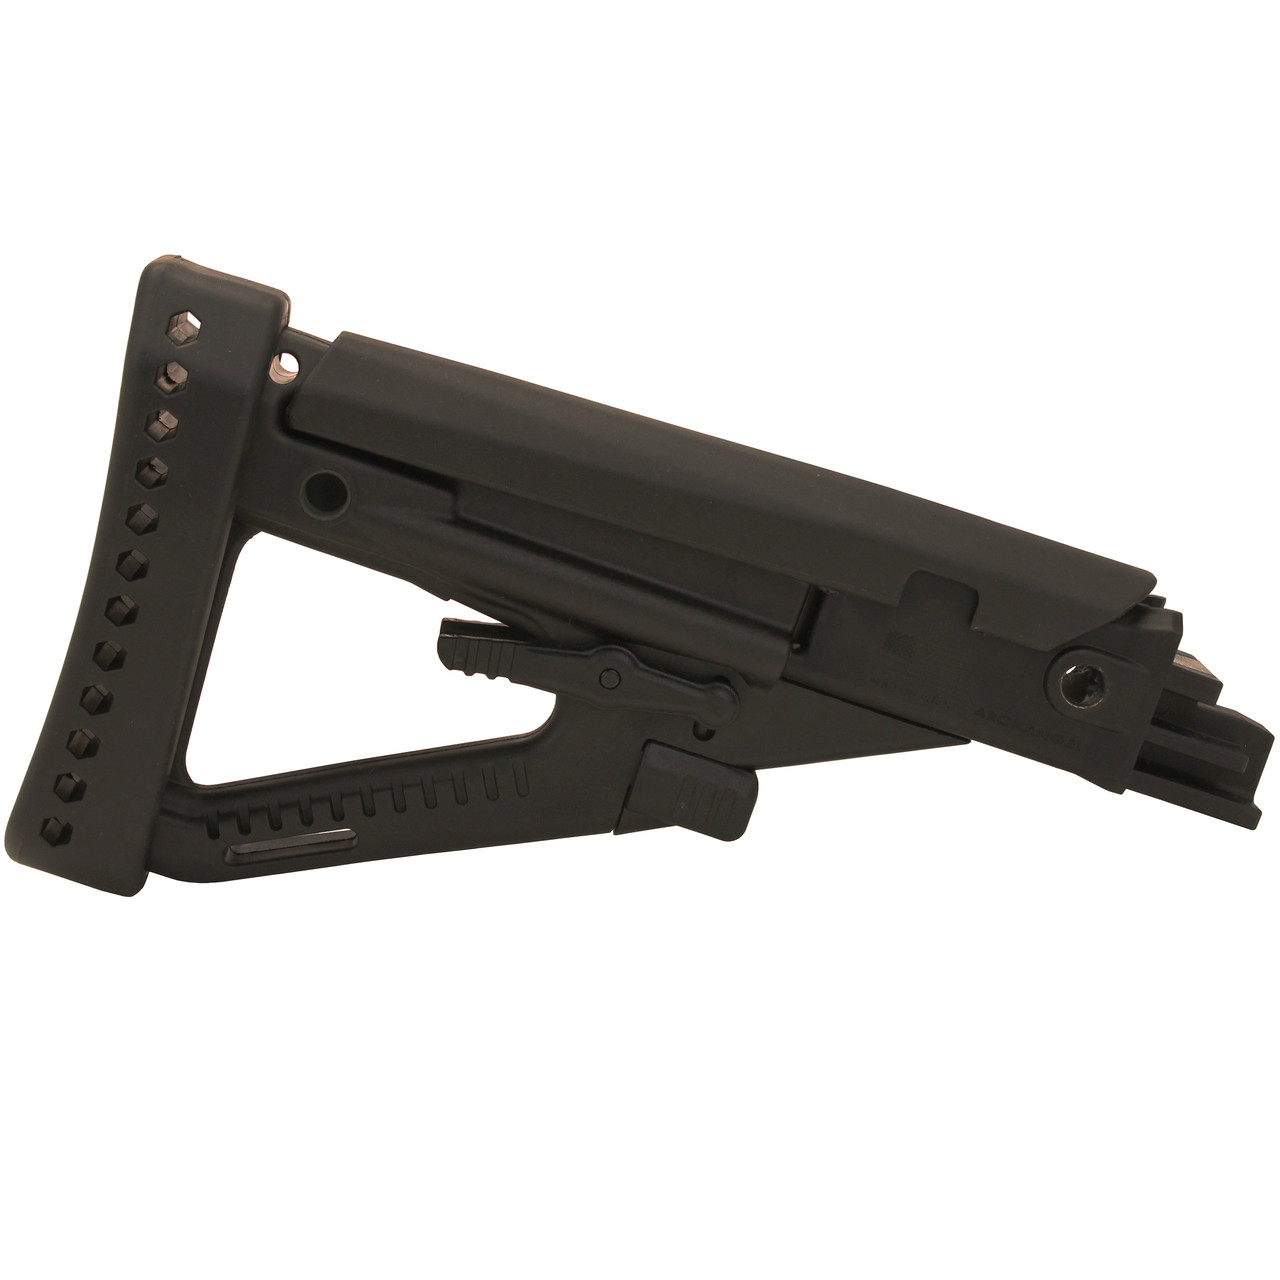 ProMag Archangel AK Adjustable Butt Stock OPFOR Series (AA123)